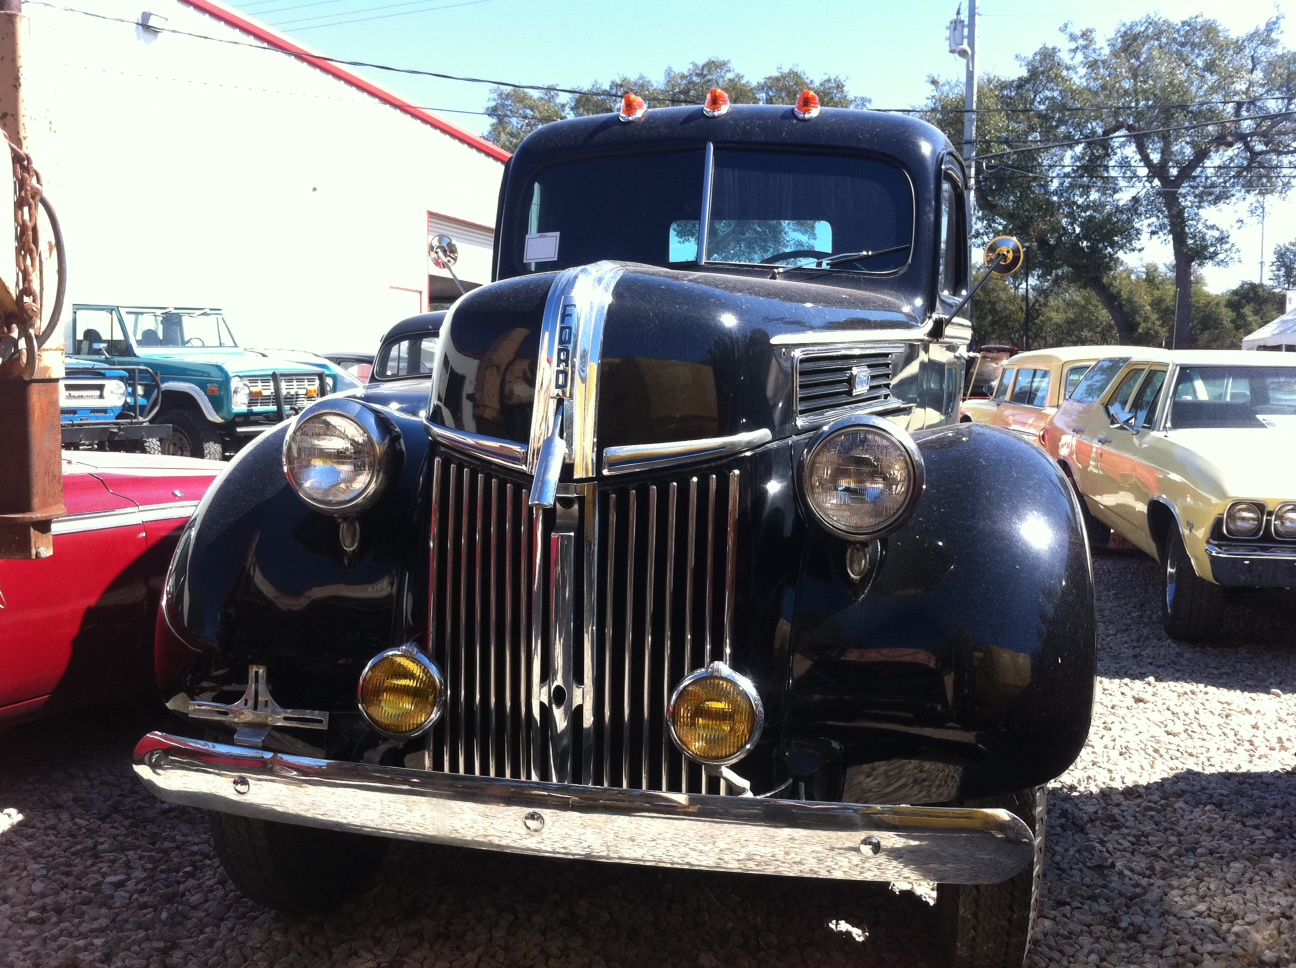 large c 1940 ford truck for sale at motoreum in nw austin atx car pictures real pics from. Black Bedroom Furniture Sets. Home Design Ideas